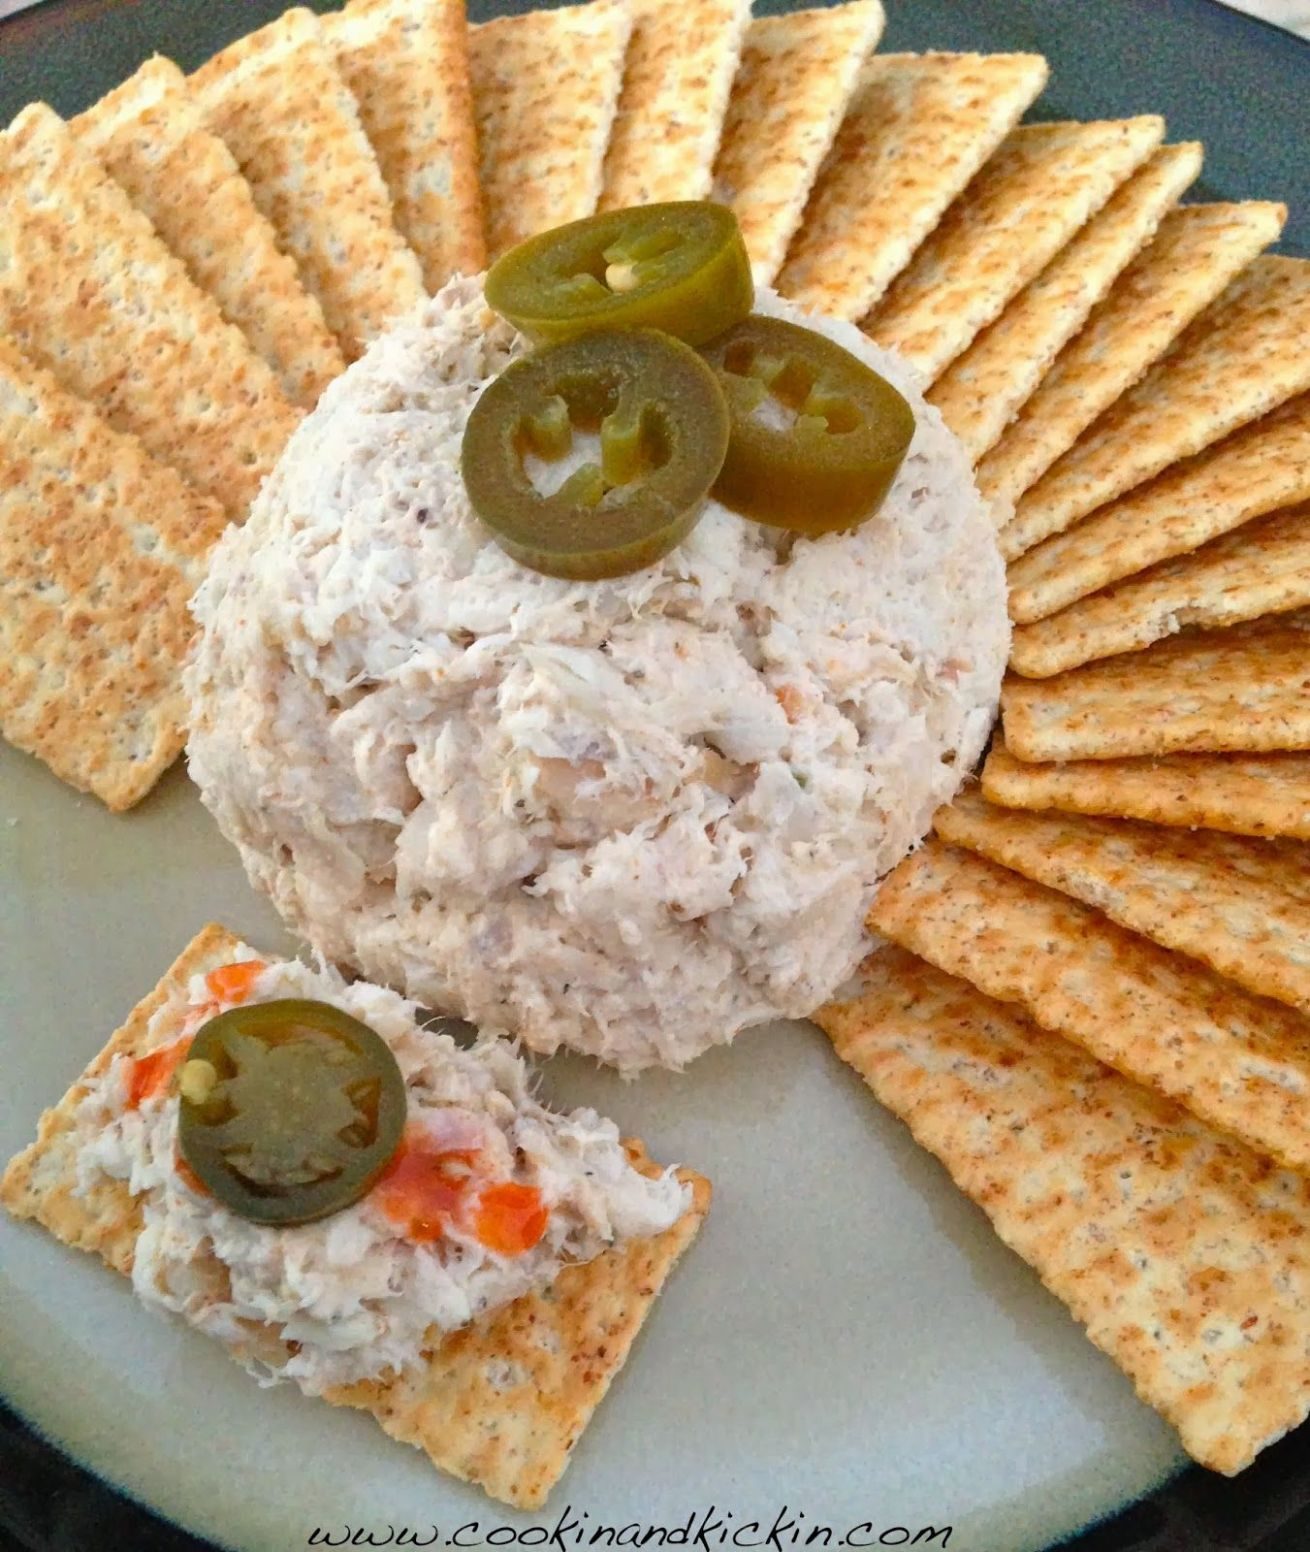 Pin by Kelley DePauw on recipes | Smoked fish dip, Fish recipes ..